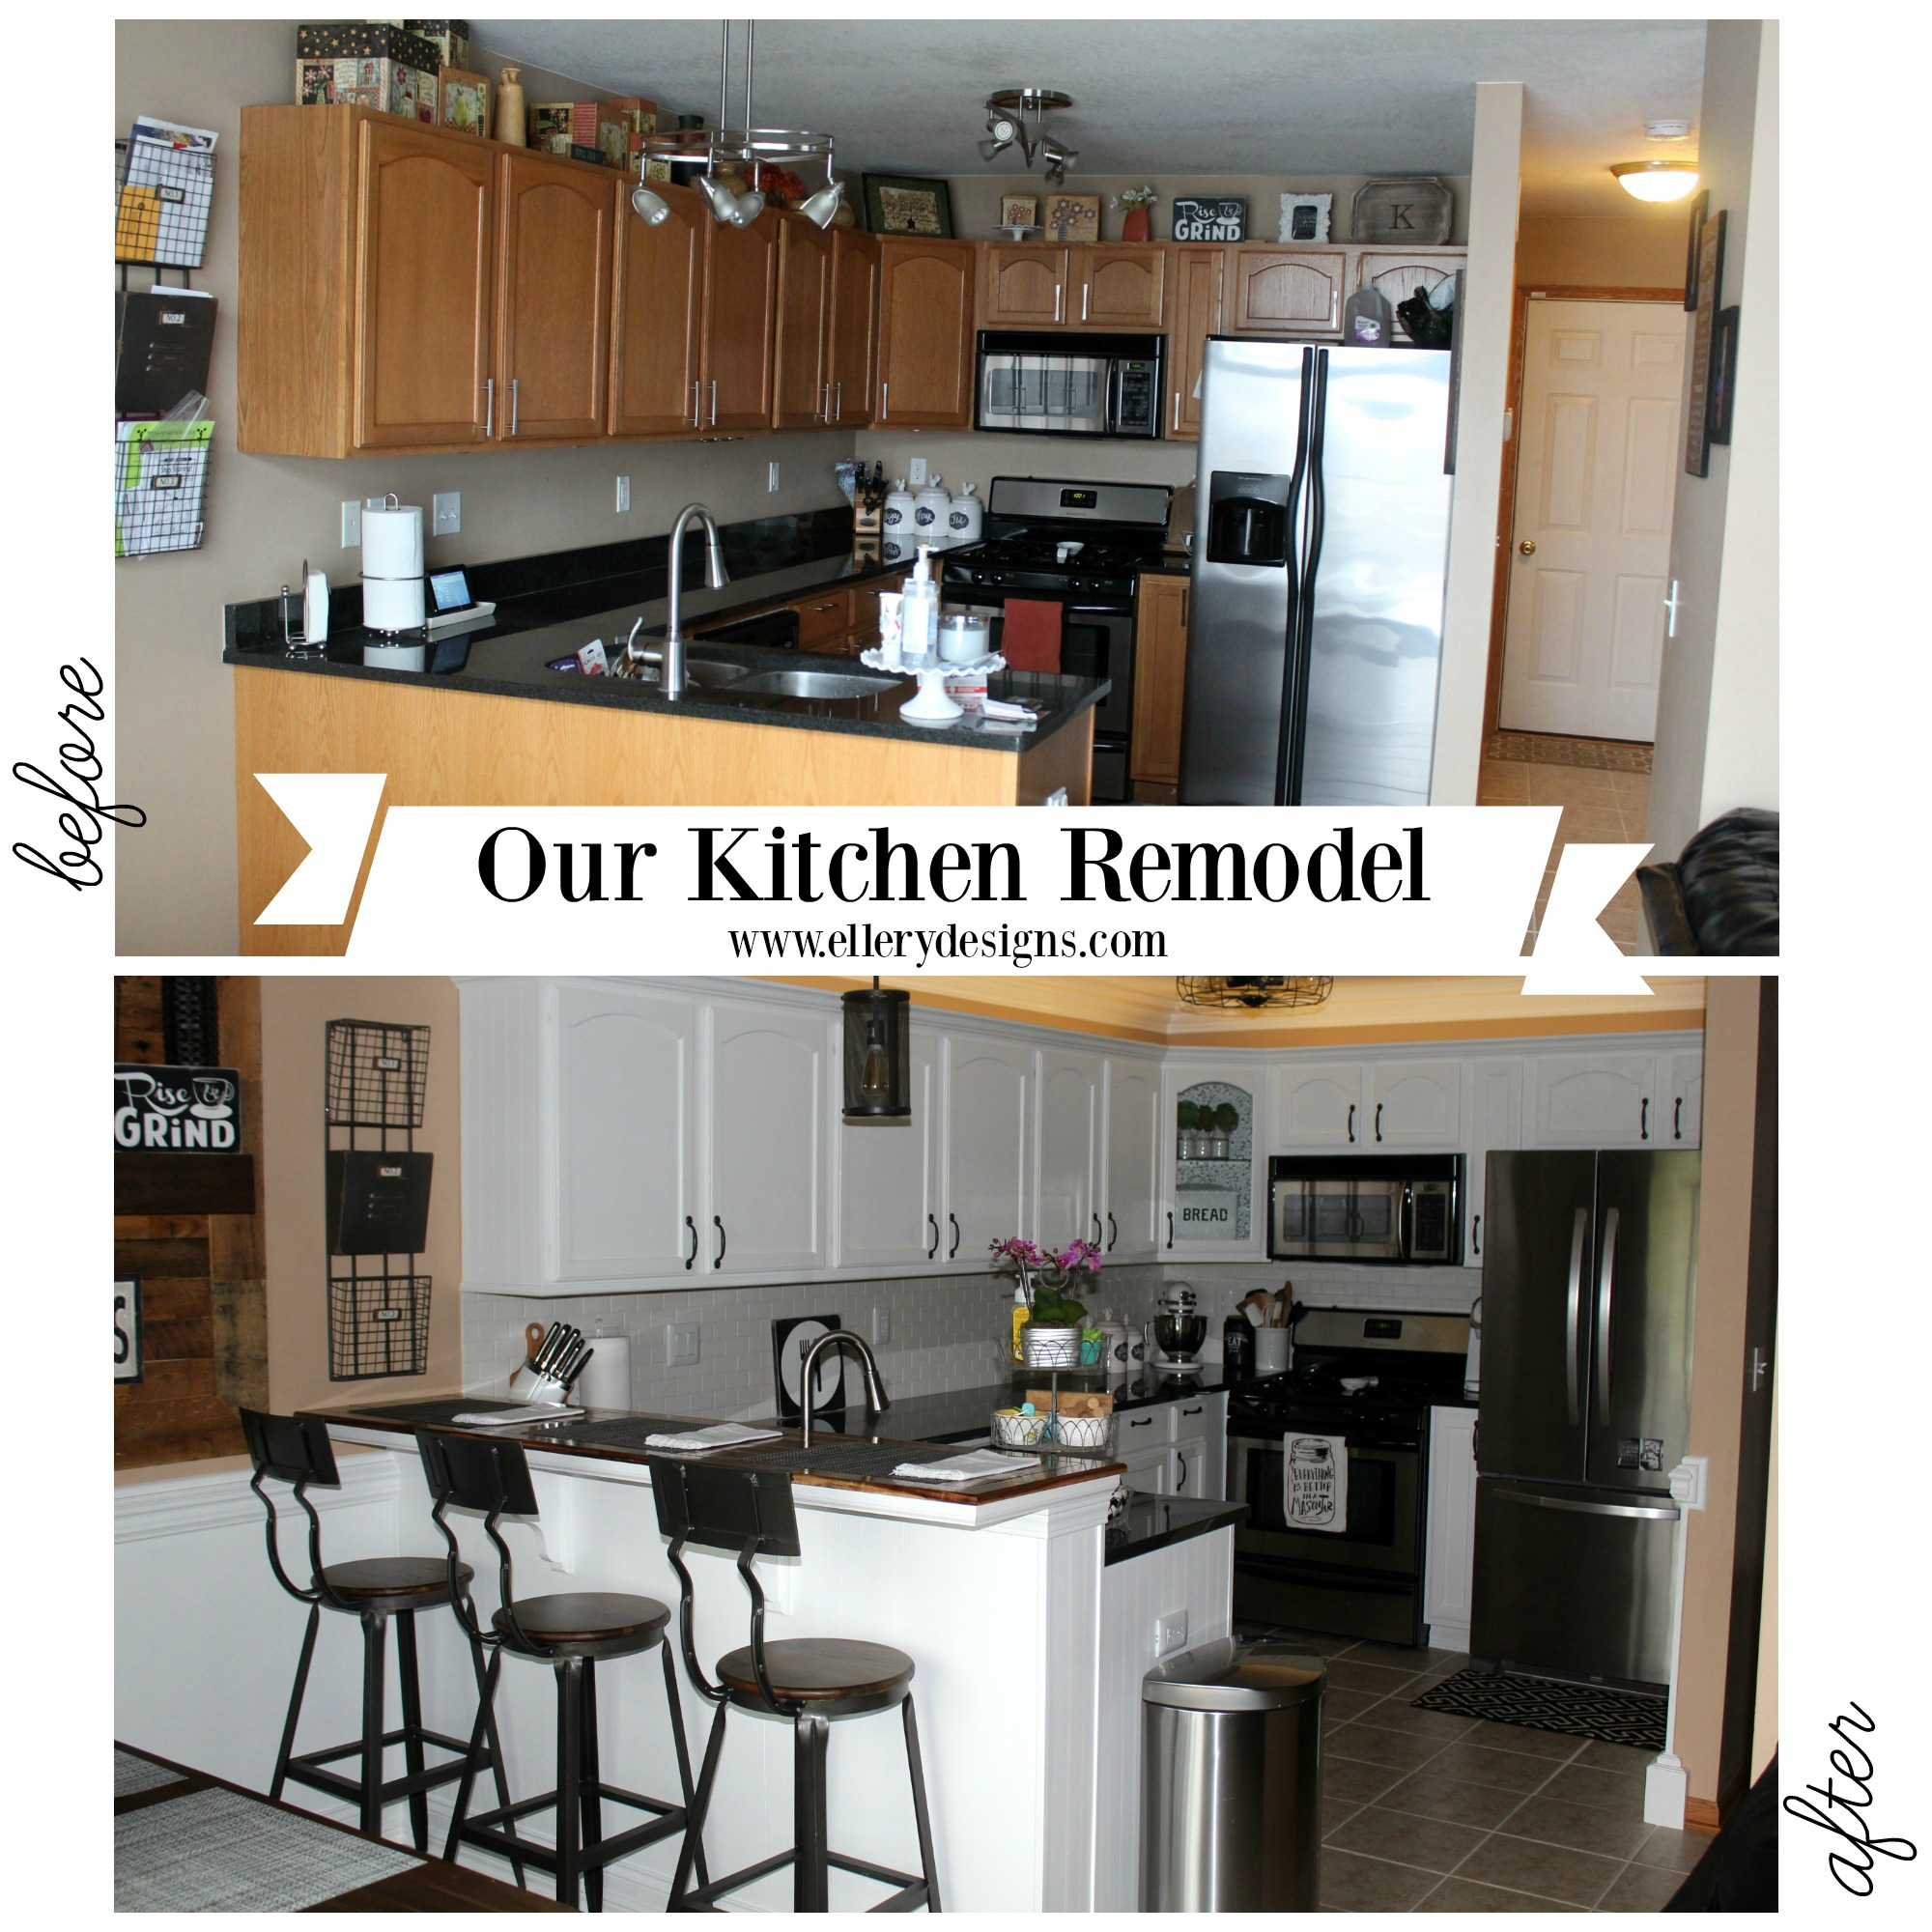 Kitchen Renovation Value: Our DIY Kitchen Remodel